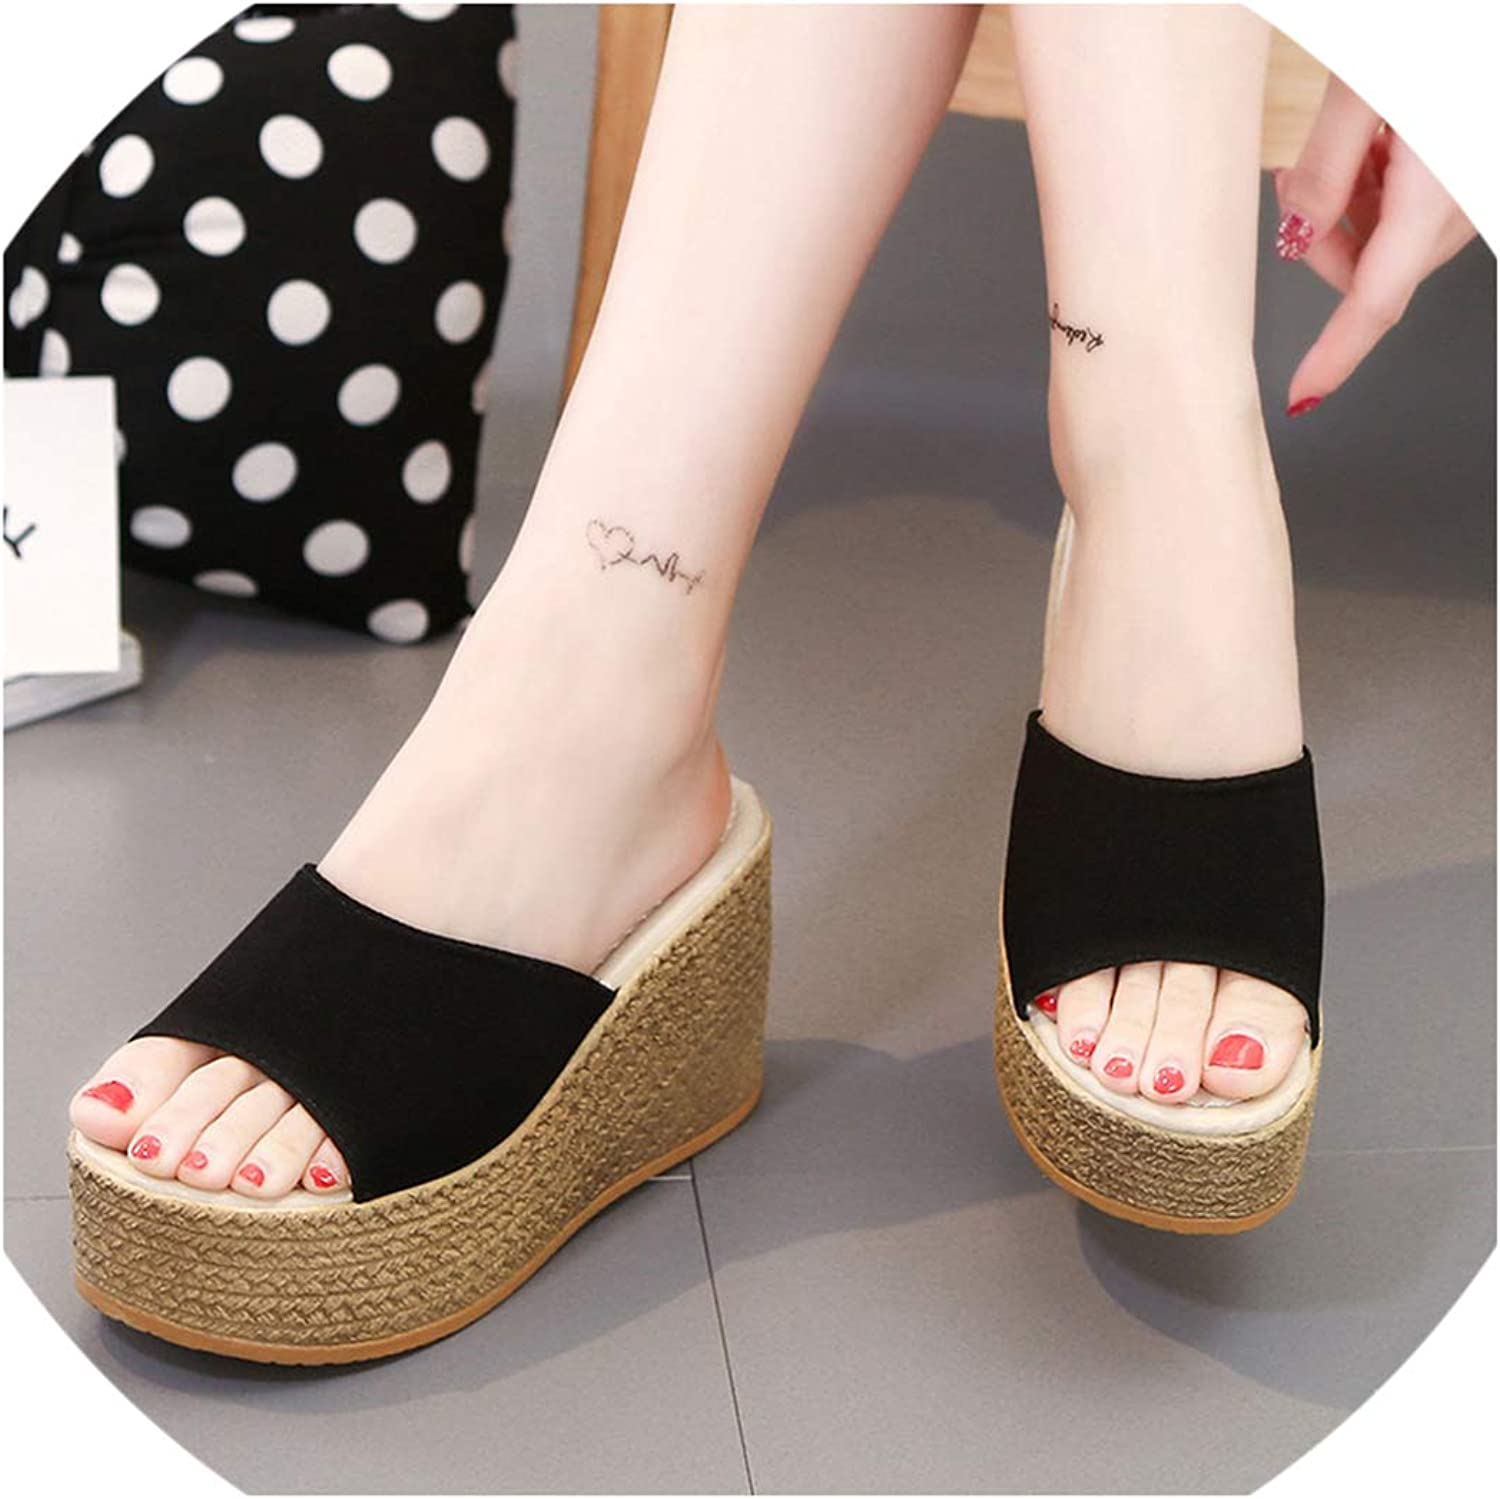 Platform Wedges shoes Women Slippers Open Peep Toes Slippers Women Slides Sandals,Black,8.5